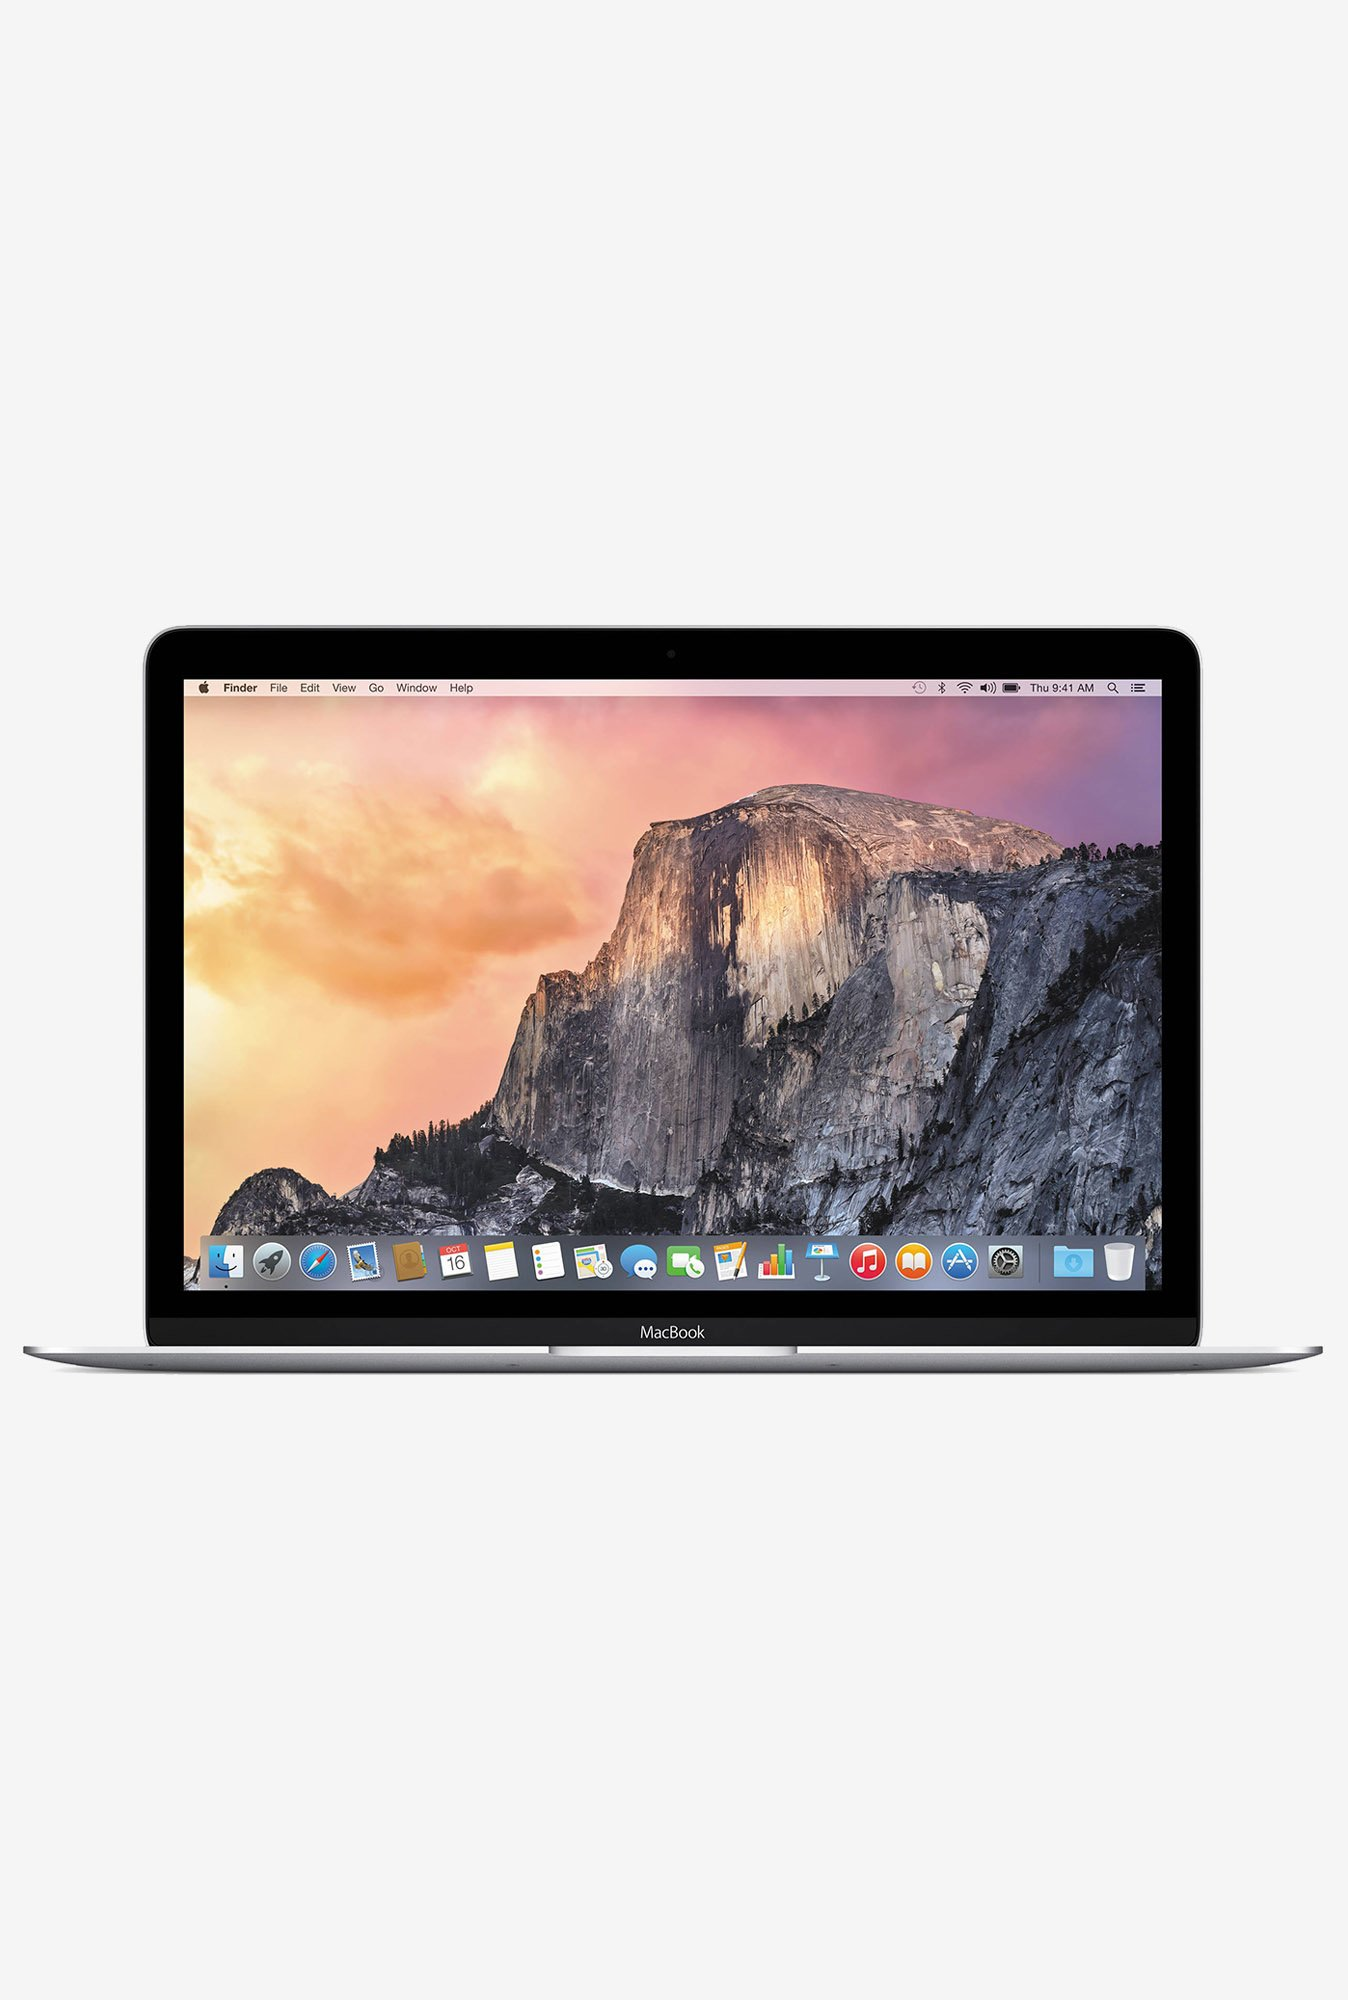 Apple MacBook MF865HN/A 30.48cm (Intel m5, 512GB) Silver